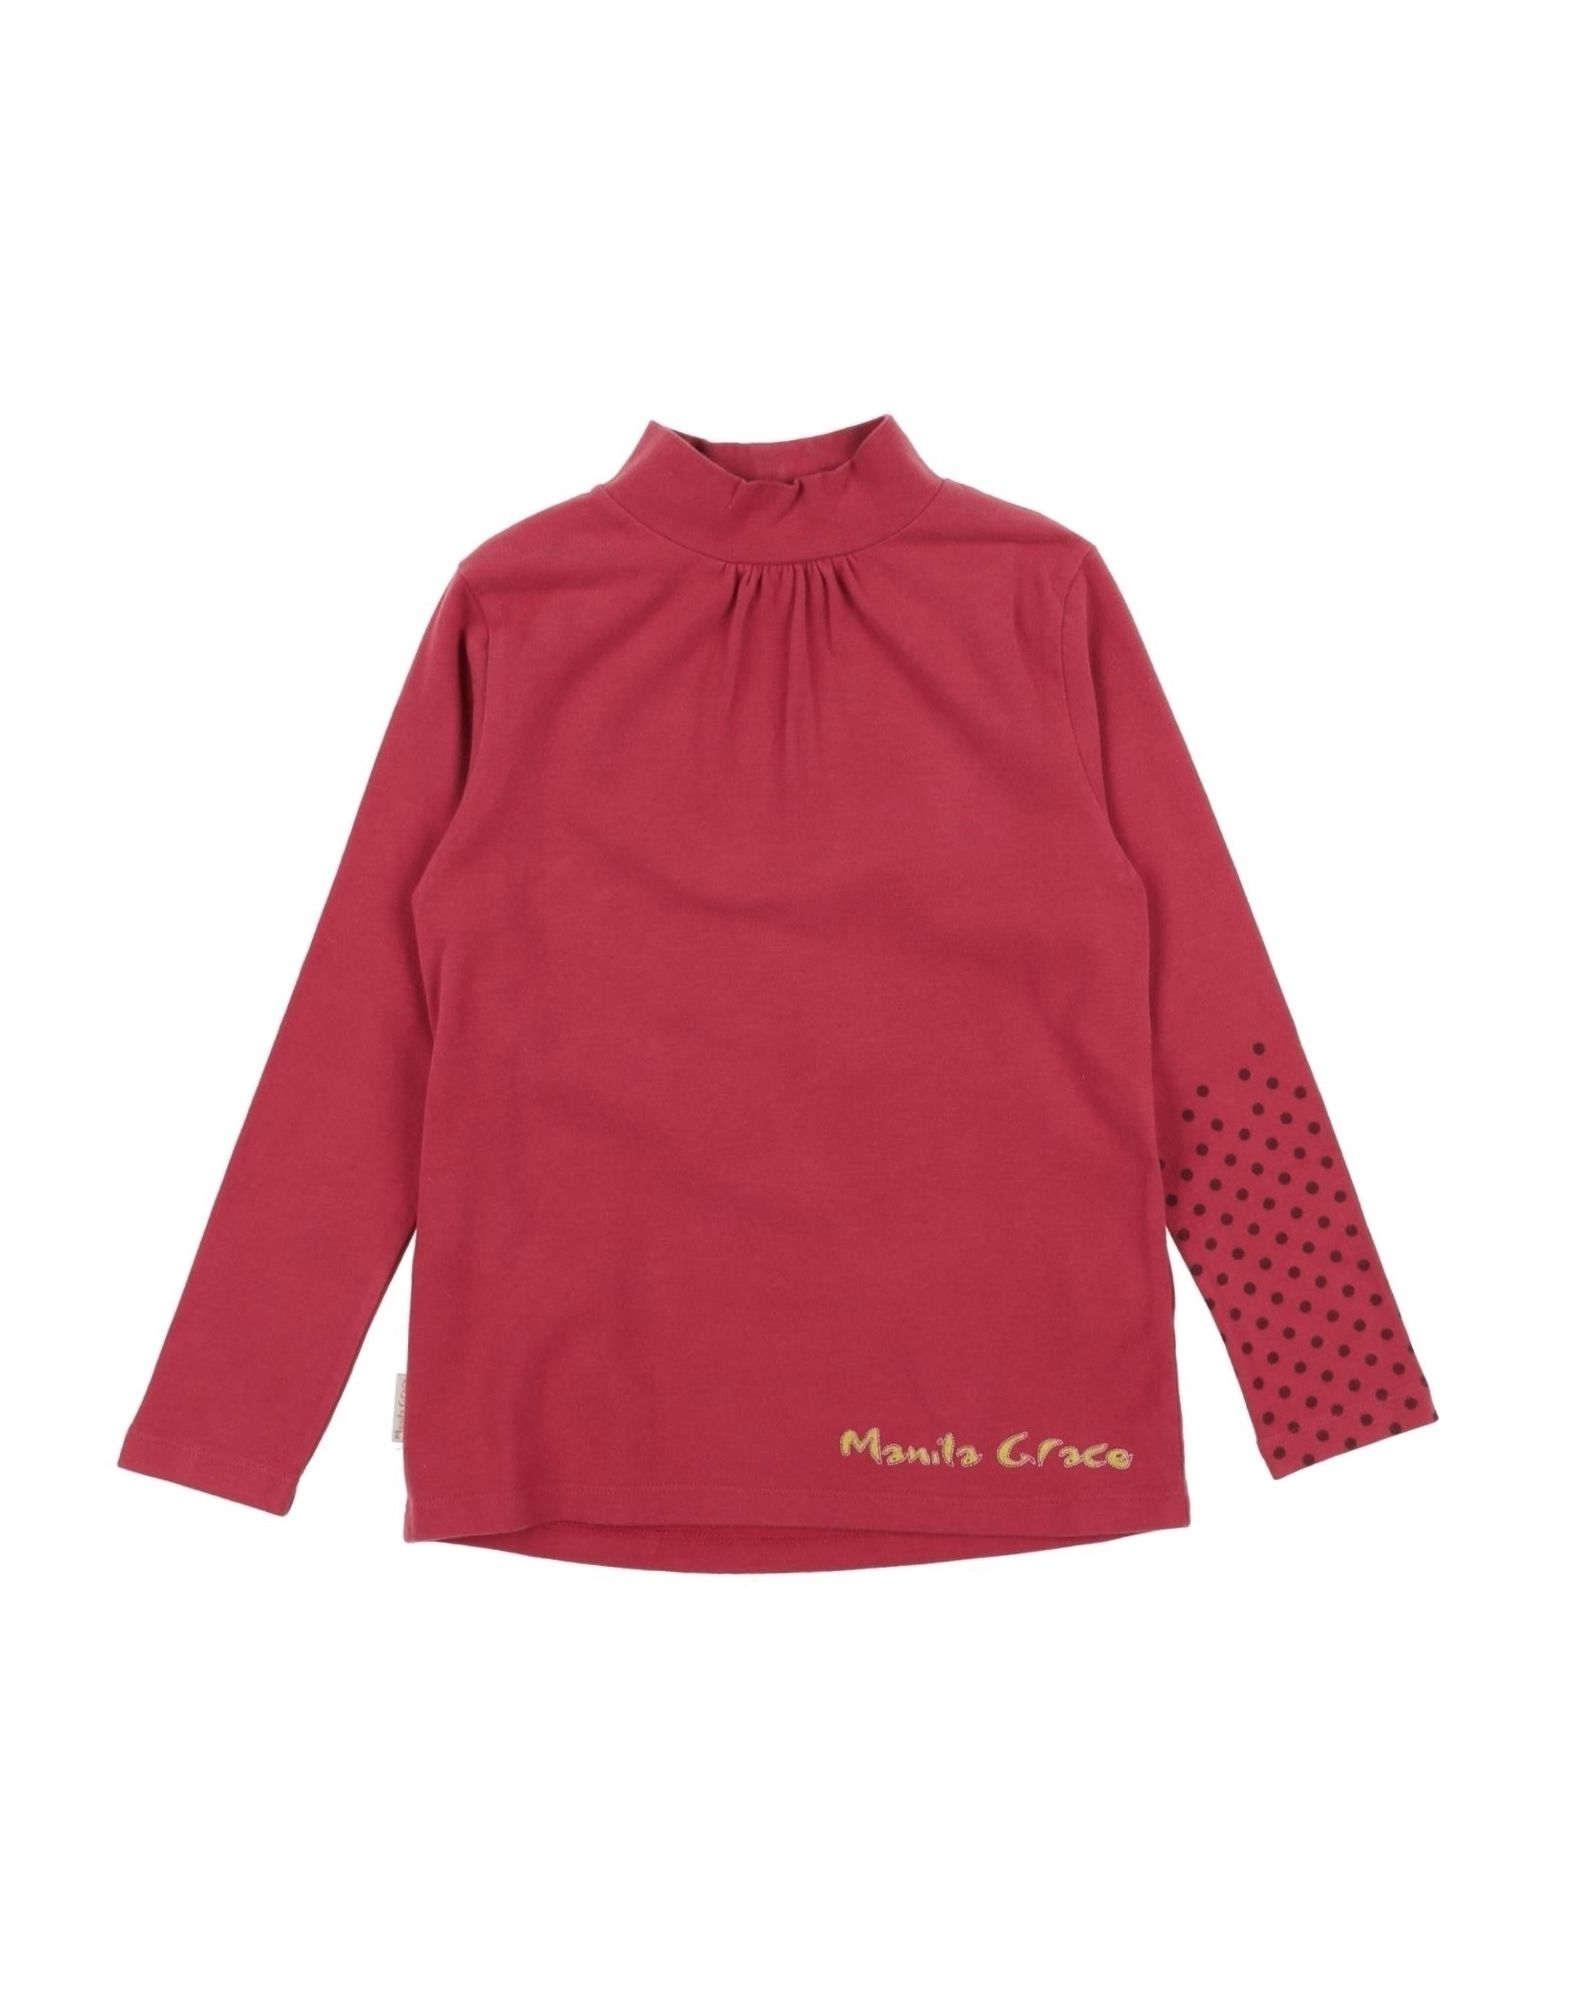 Manila Grace Kids' T-shirts In Red